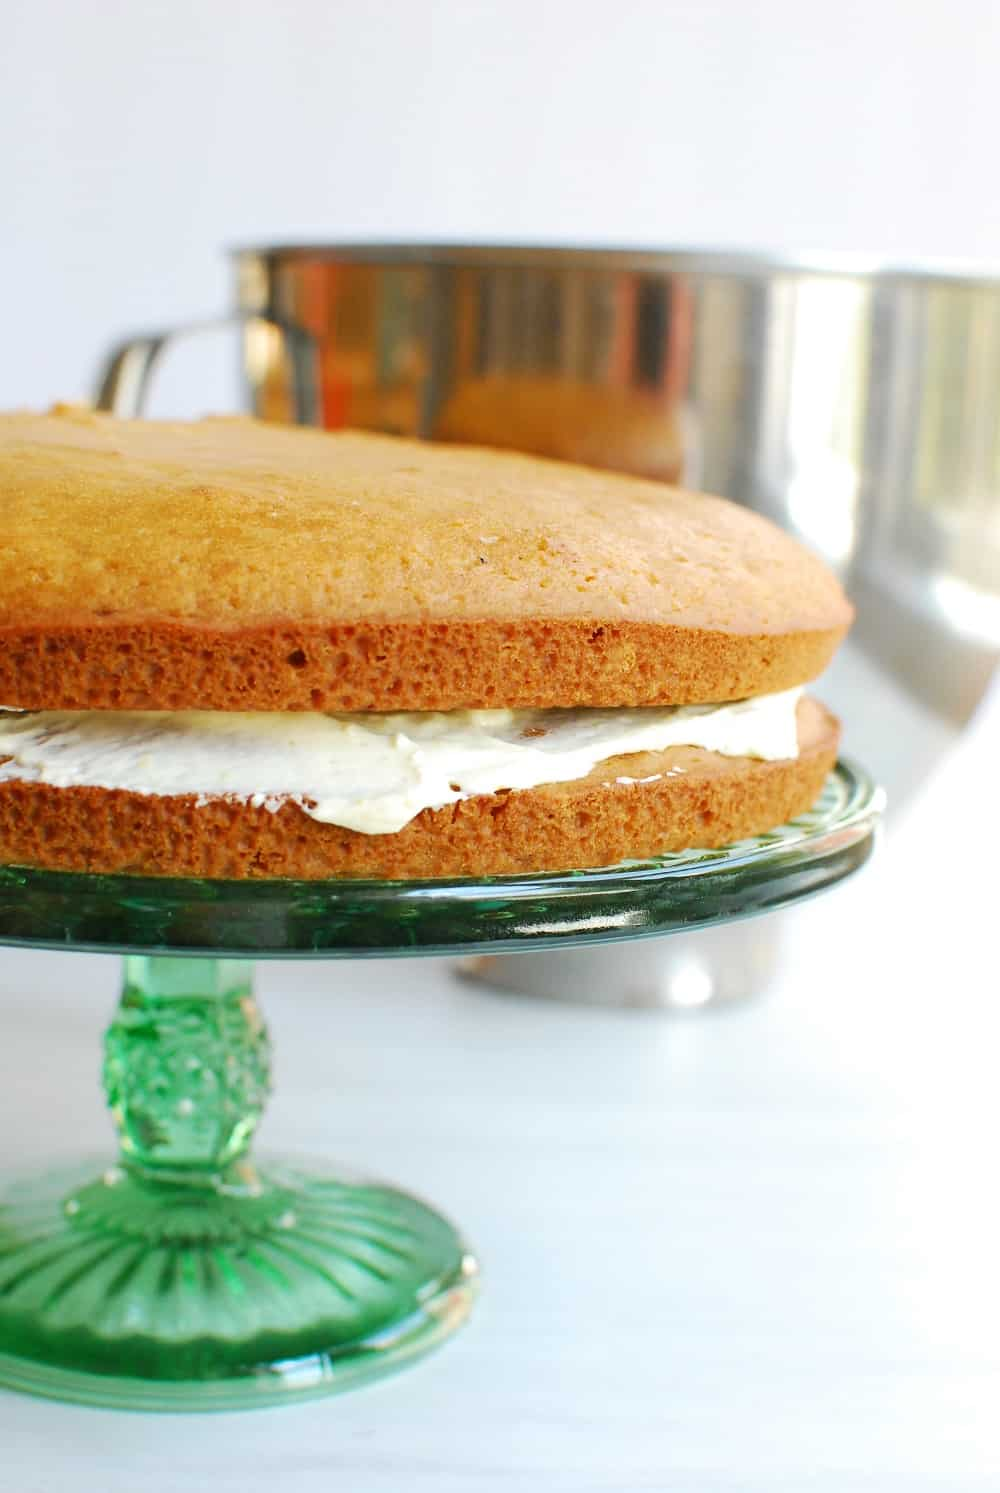 two cakes layered with frosting in the middle on a cake stand